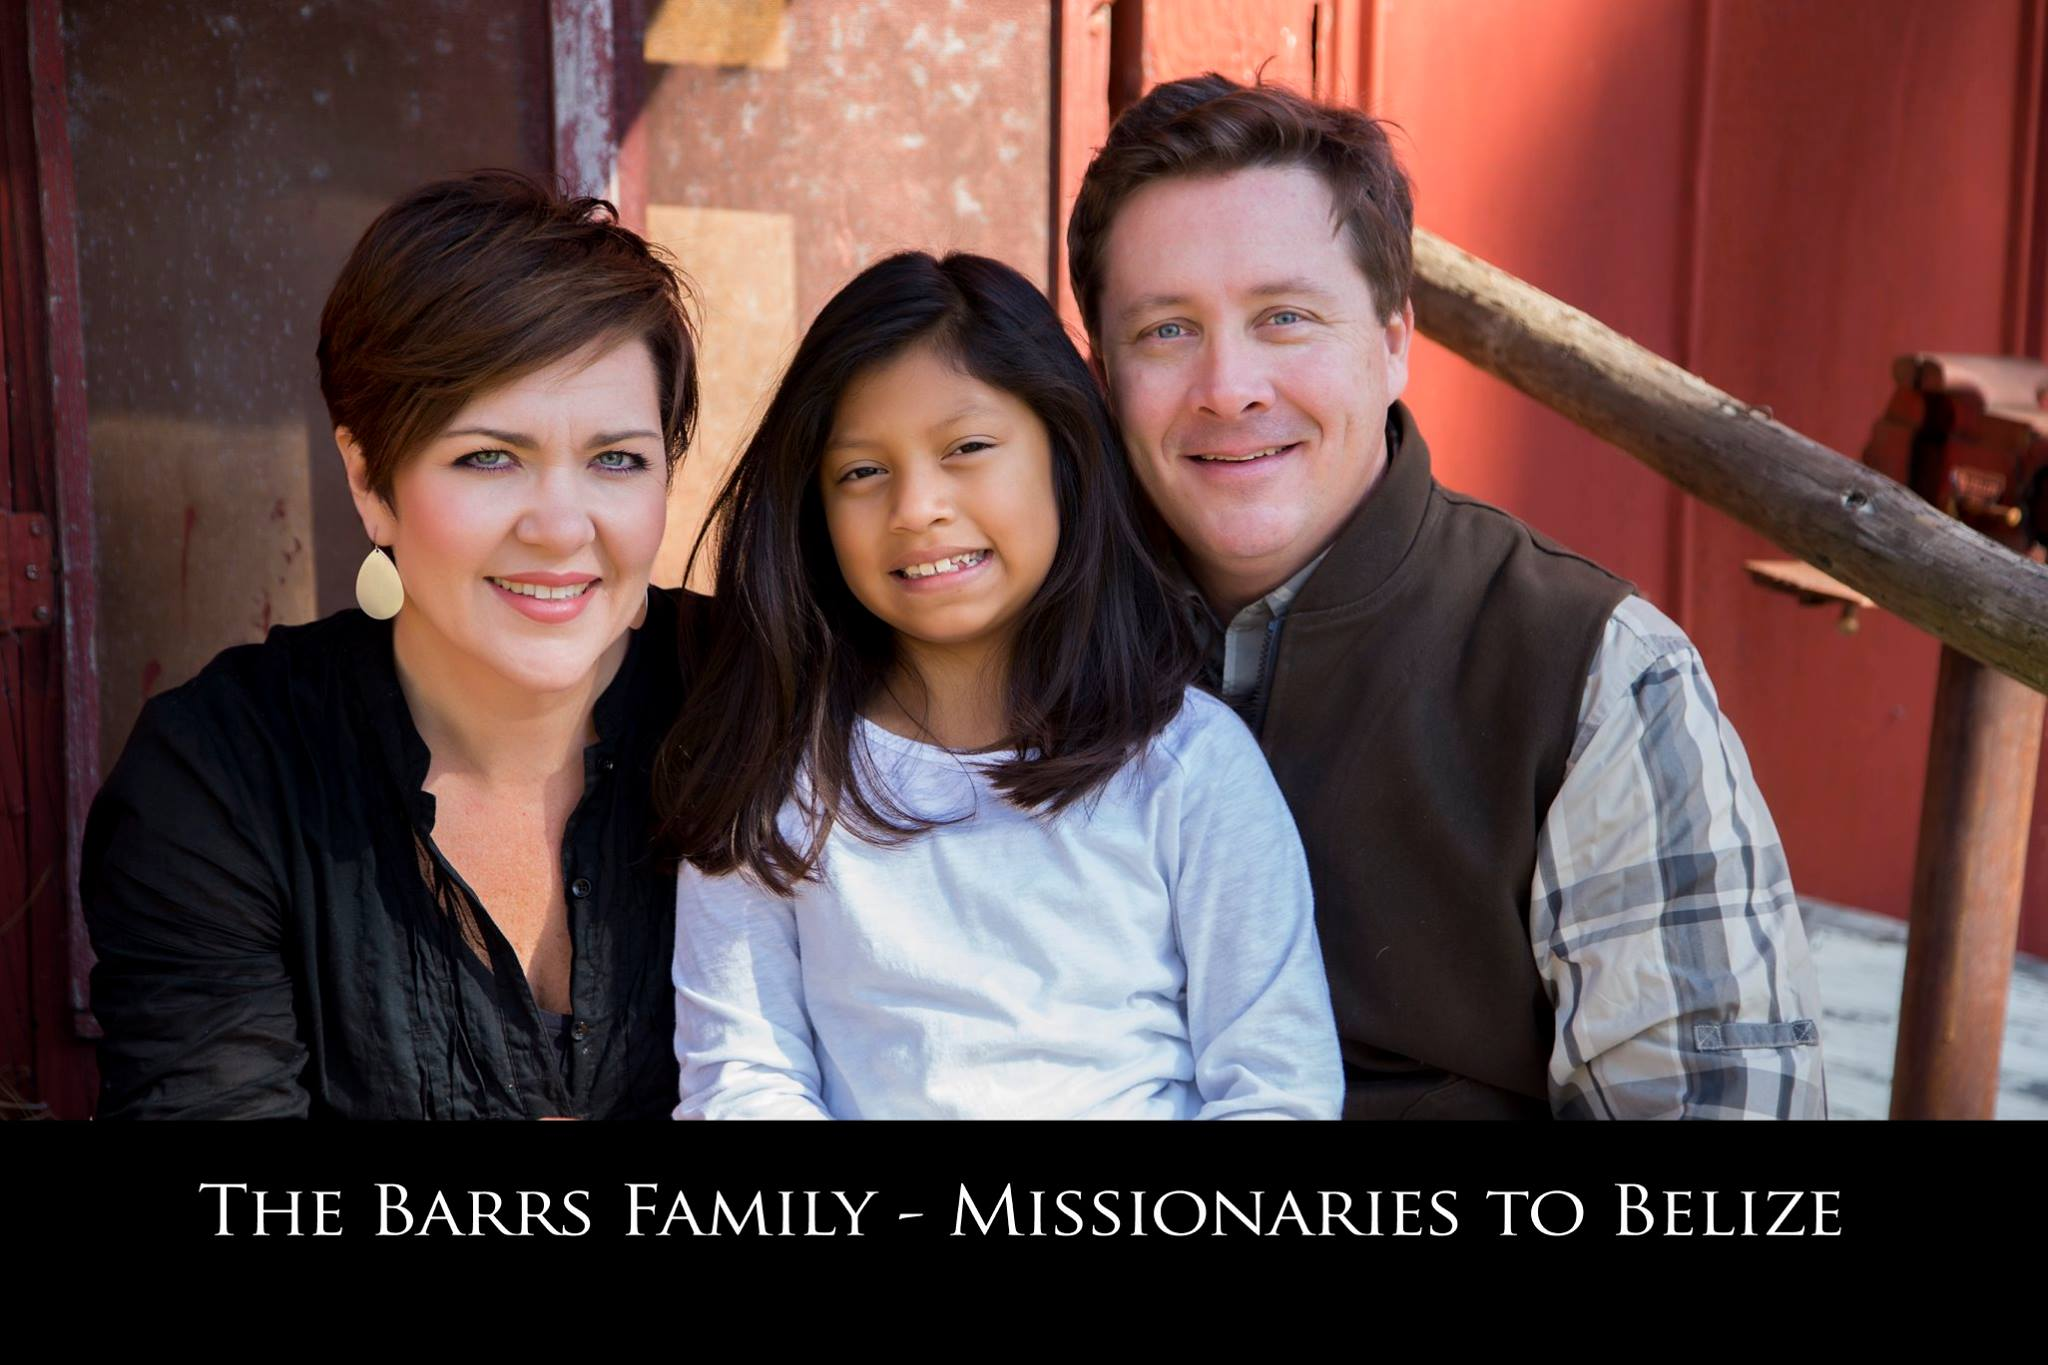 The Barrs Family